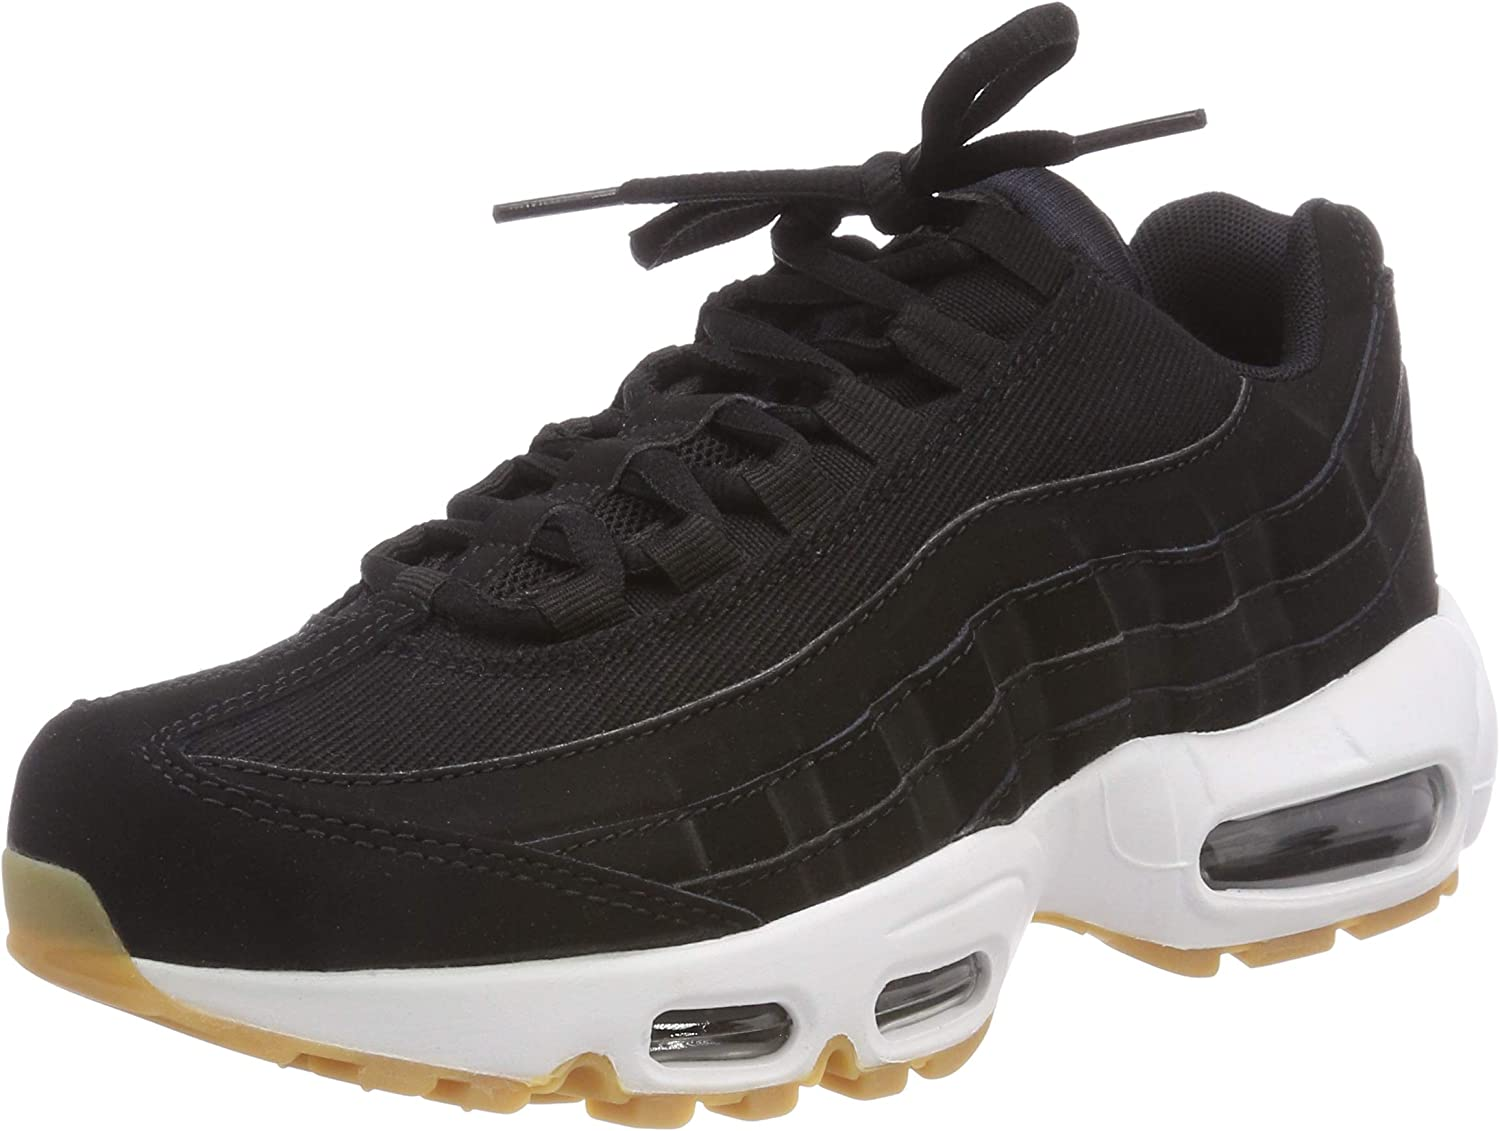 Nike Womens Air Max 95 Running shoes